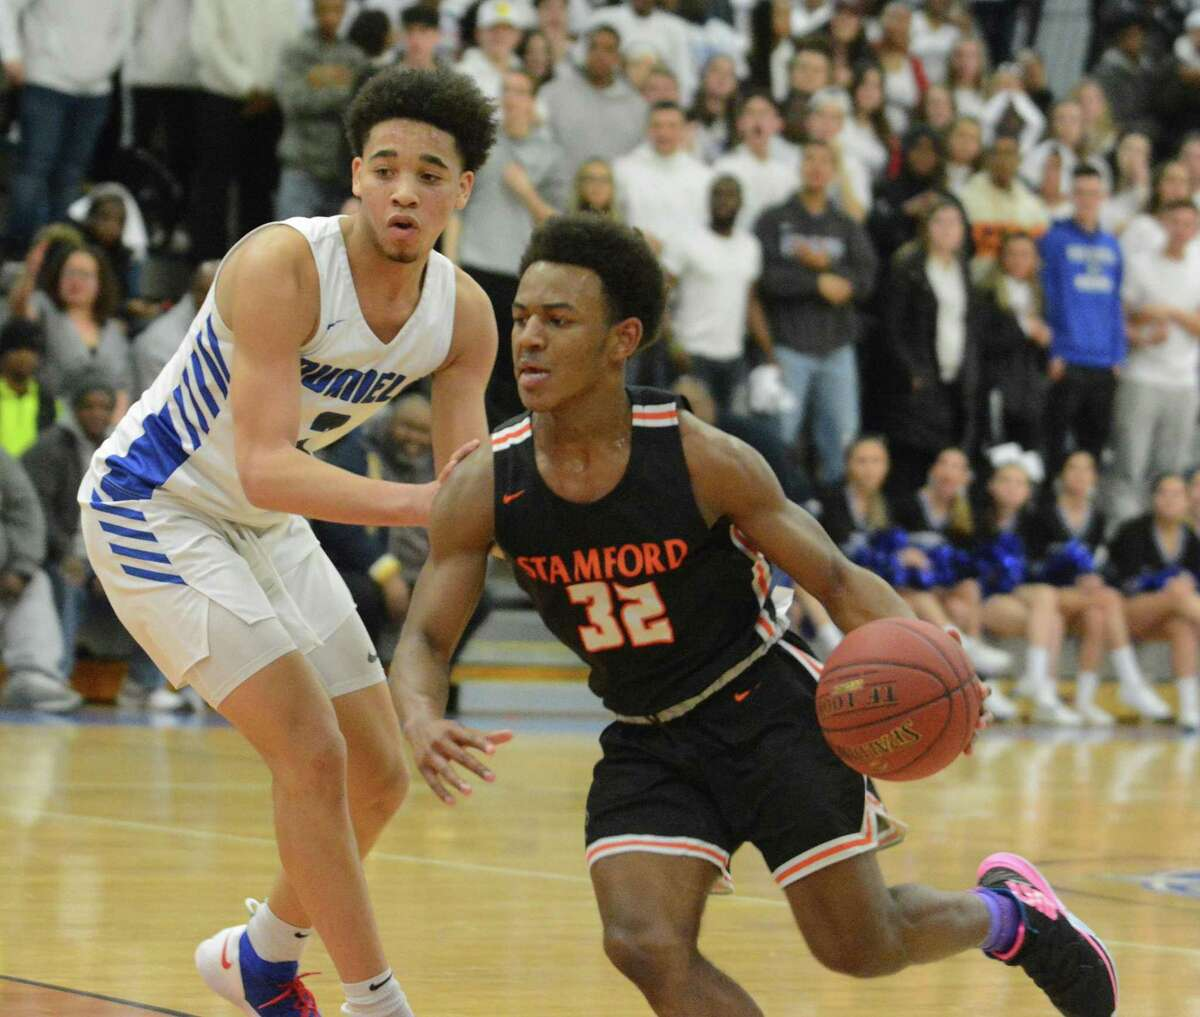 Stamford's Jaden Bell (32) dribbles past Bunnell's Max Edwards (2) during a CIAC Division II boys basketball game on Wednesday, March 6, 2019 in Stratford, Conn.